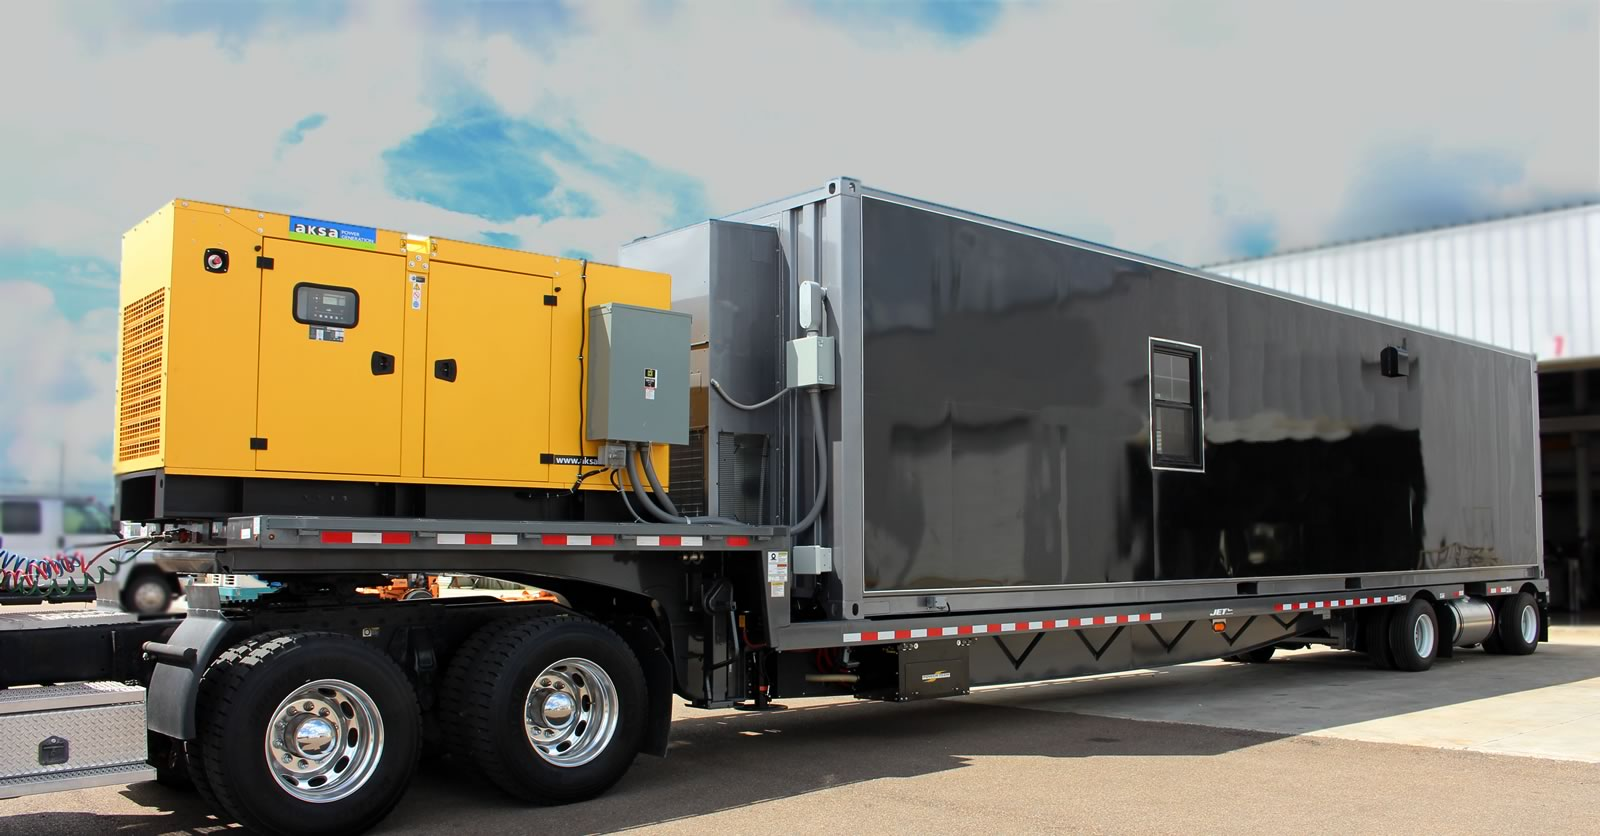 mobile machine shop trailer